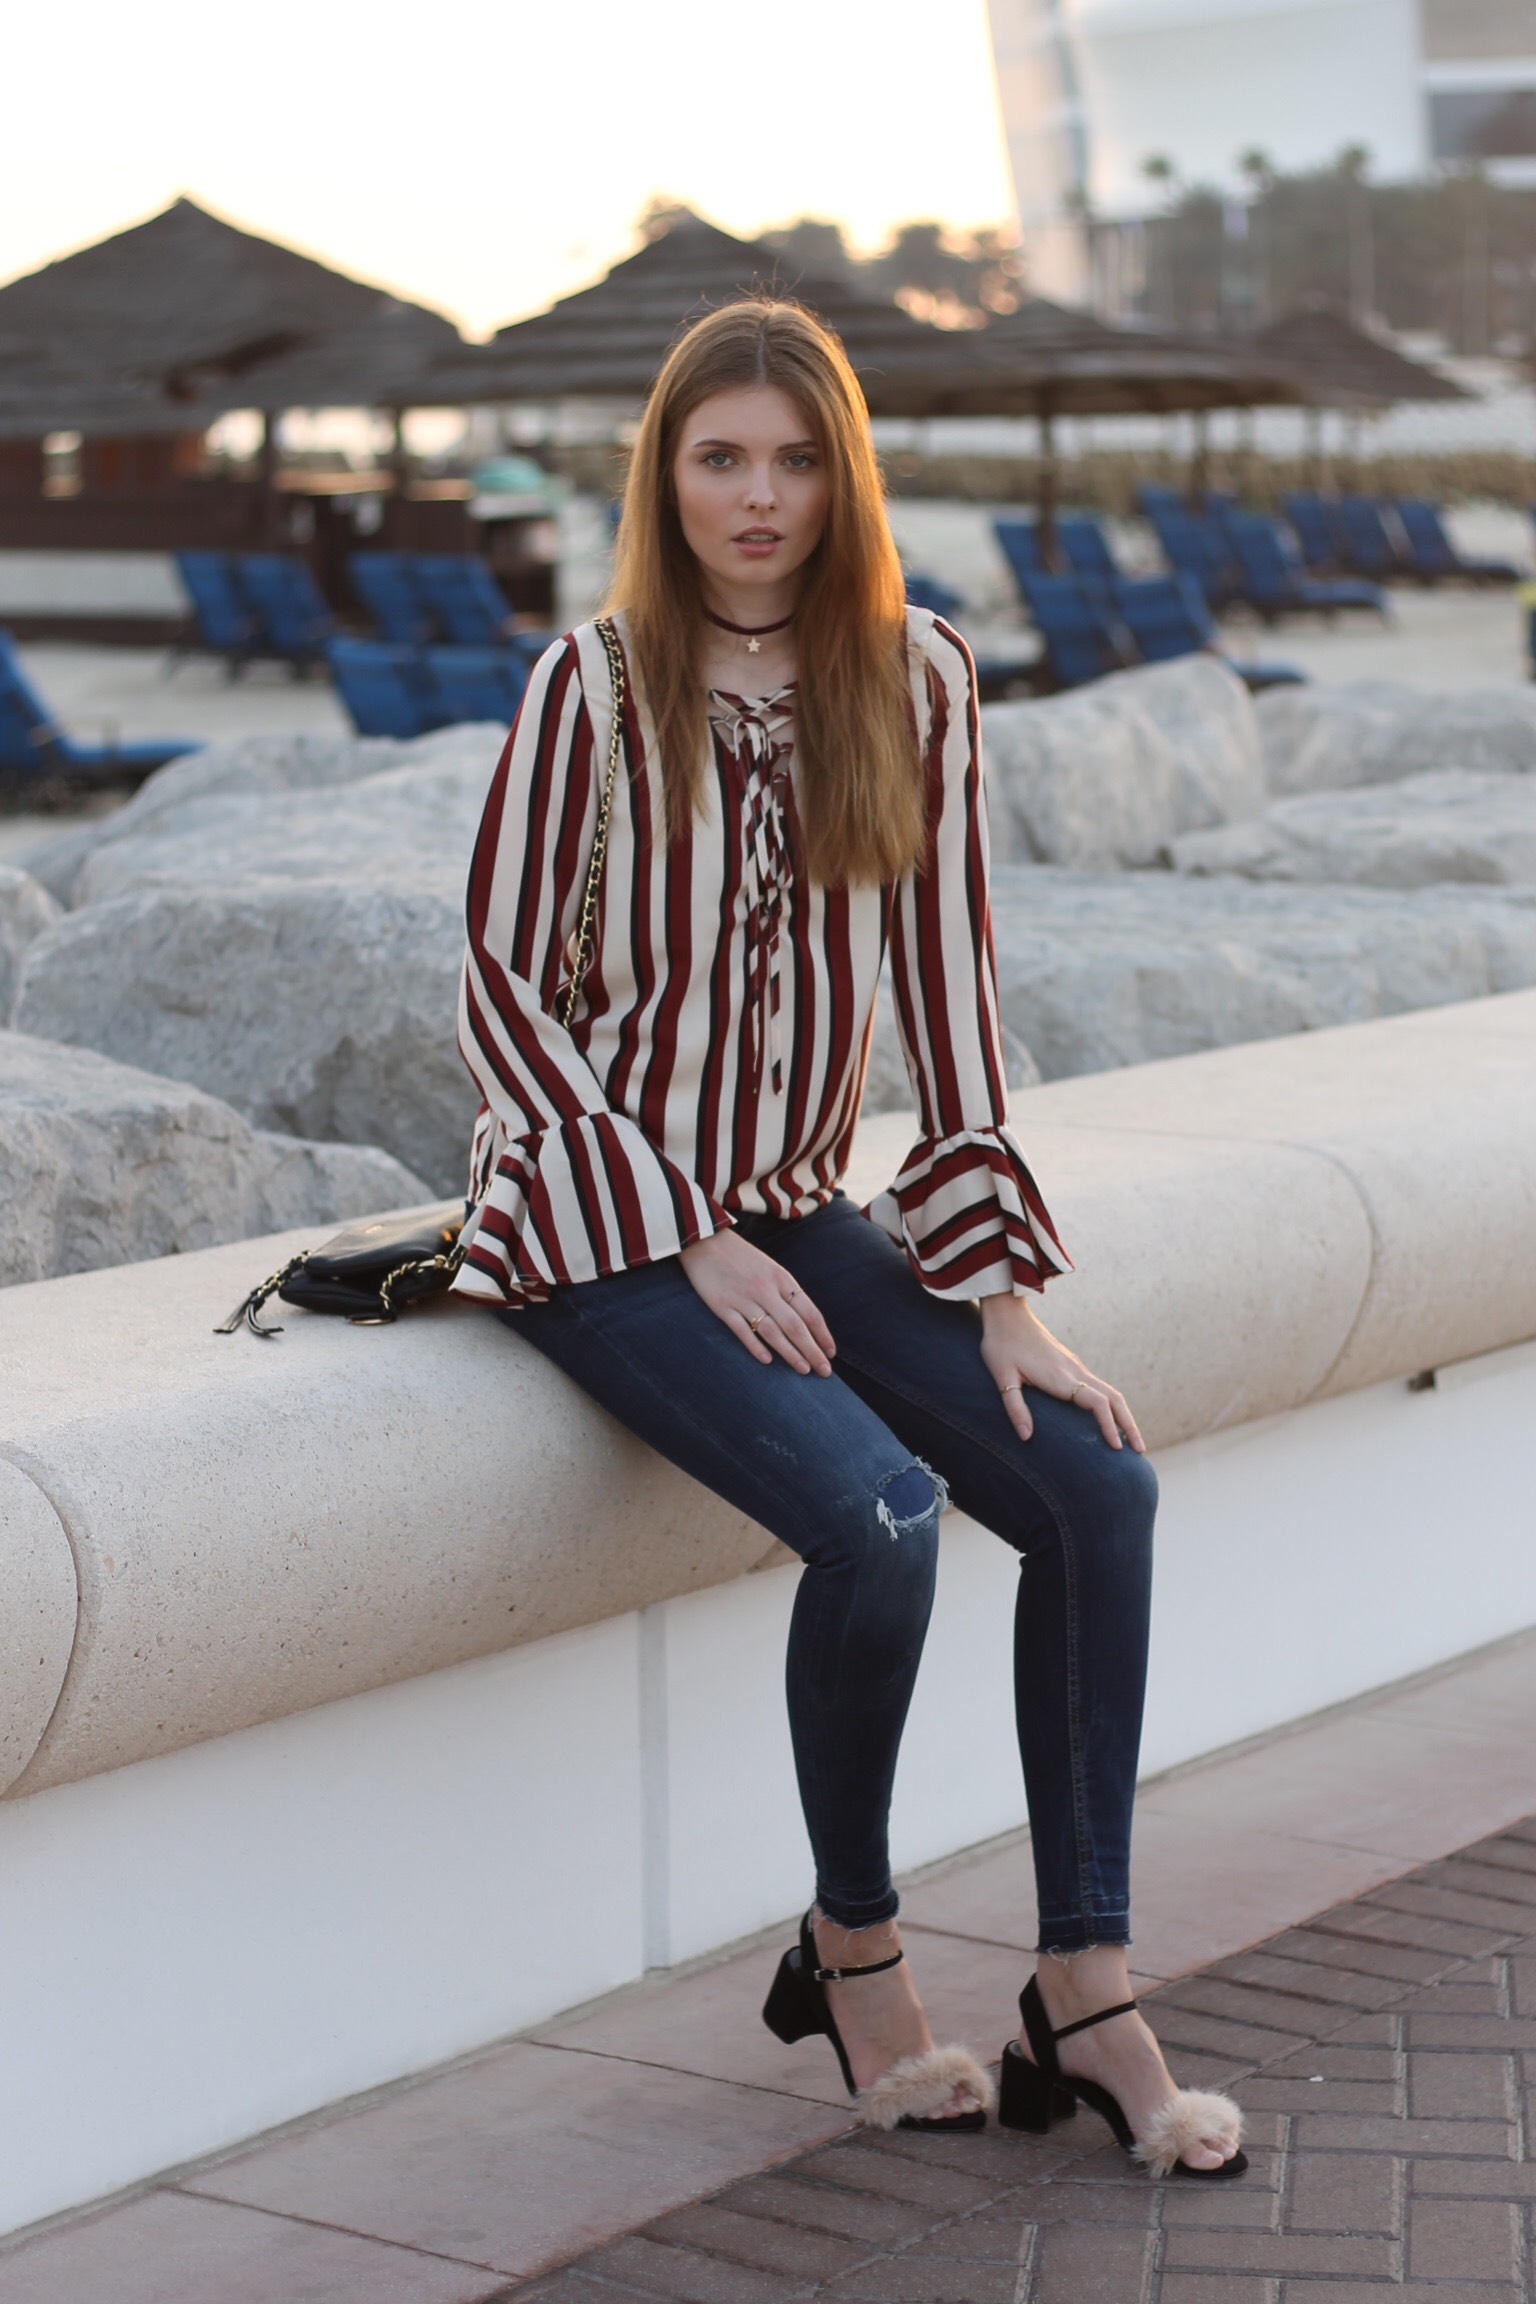 file31 - STRIPED BLOUSE OUTFIT IN DUBAI